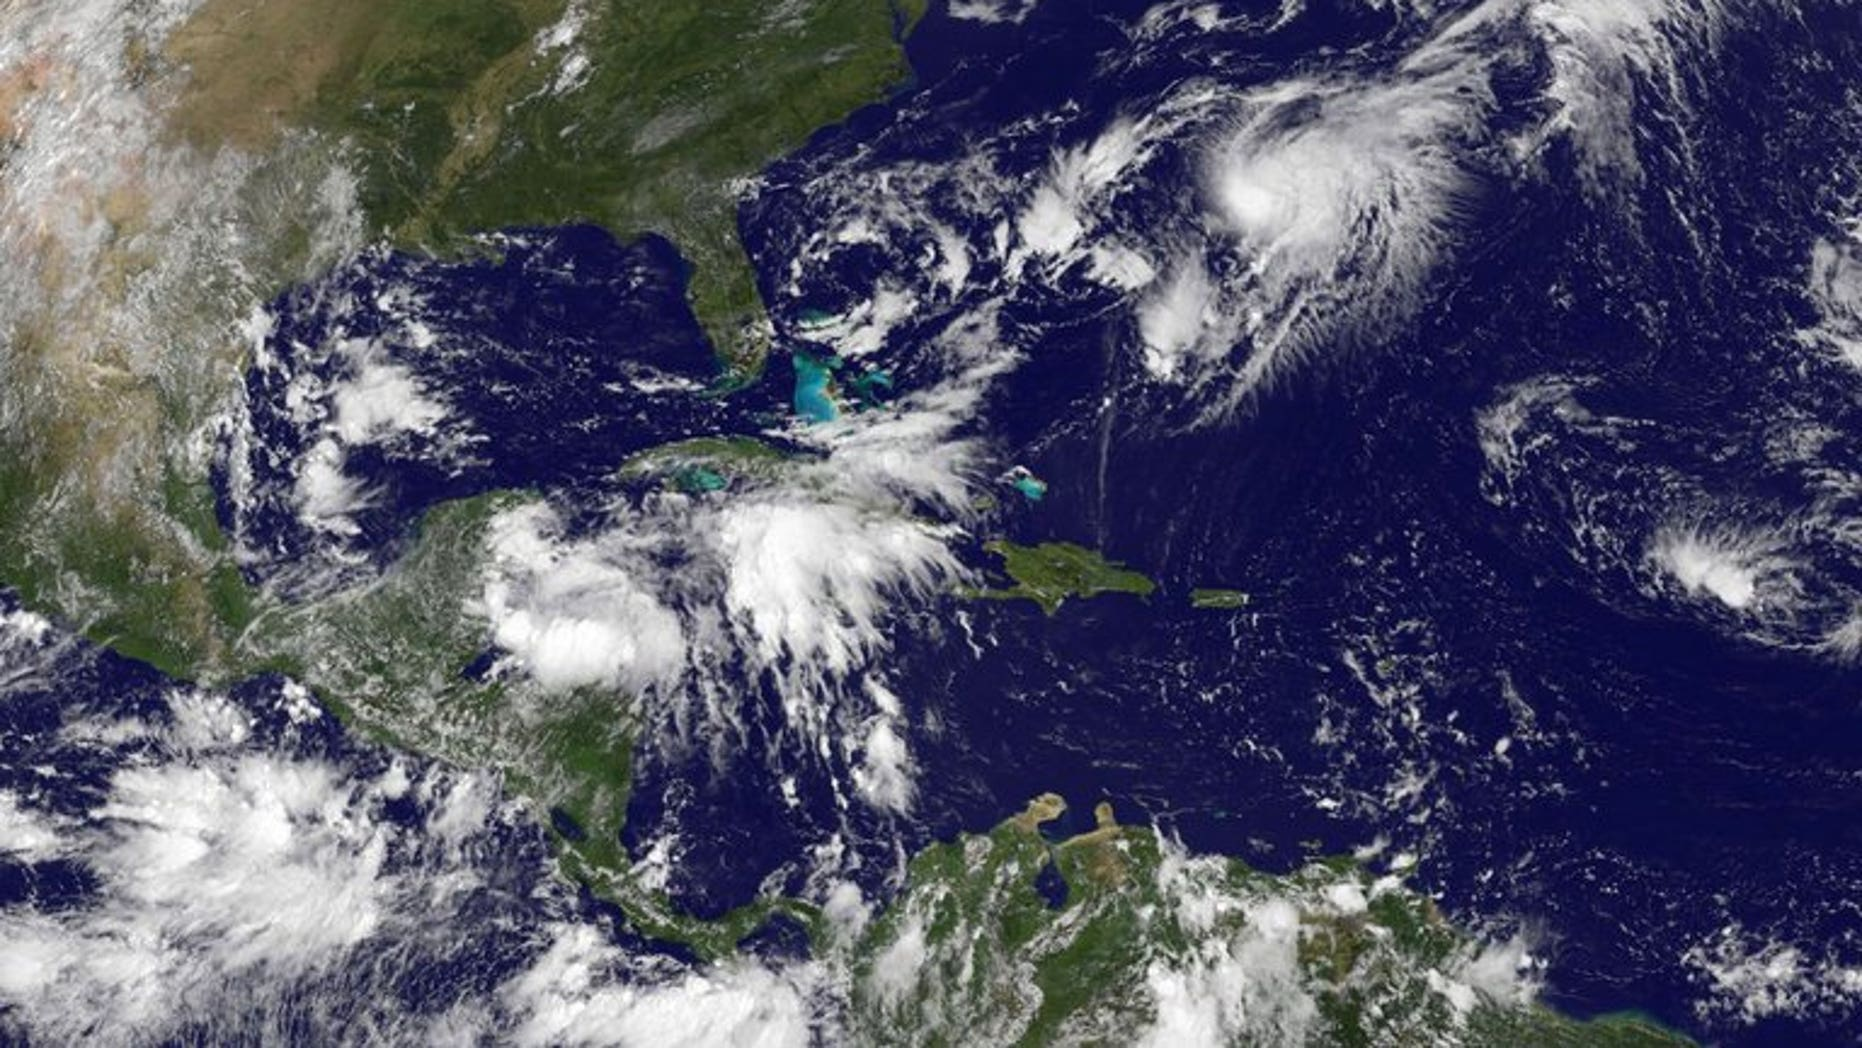 This NASA satellite image, released September 2013, shows Tropical Storm Gabrielle (Upper R) closing in on Bermuda. Forecasters said the storm, which was some 120 miles south of the island, was strengthening and approaching.